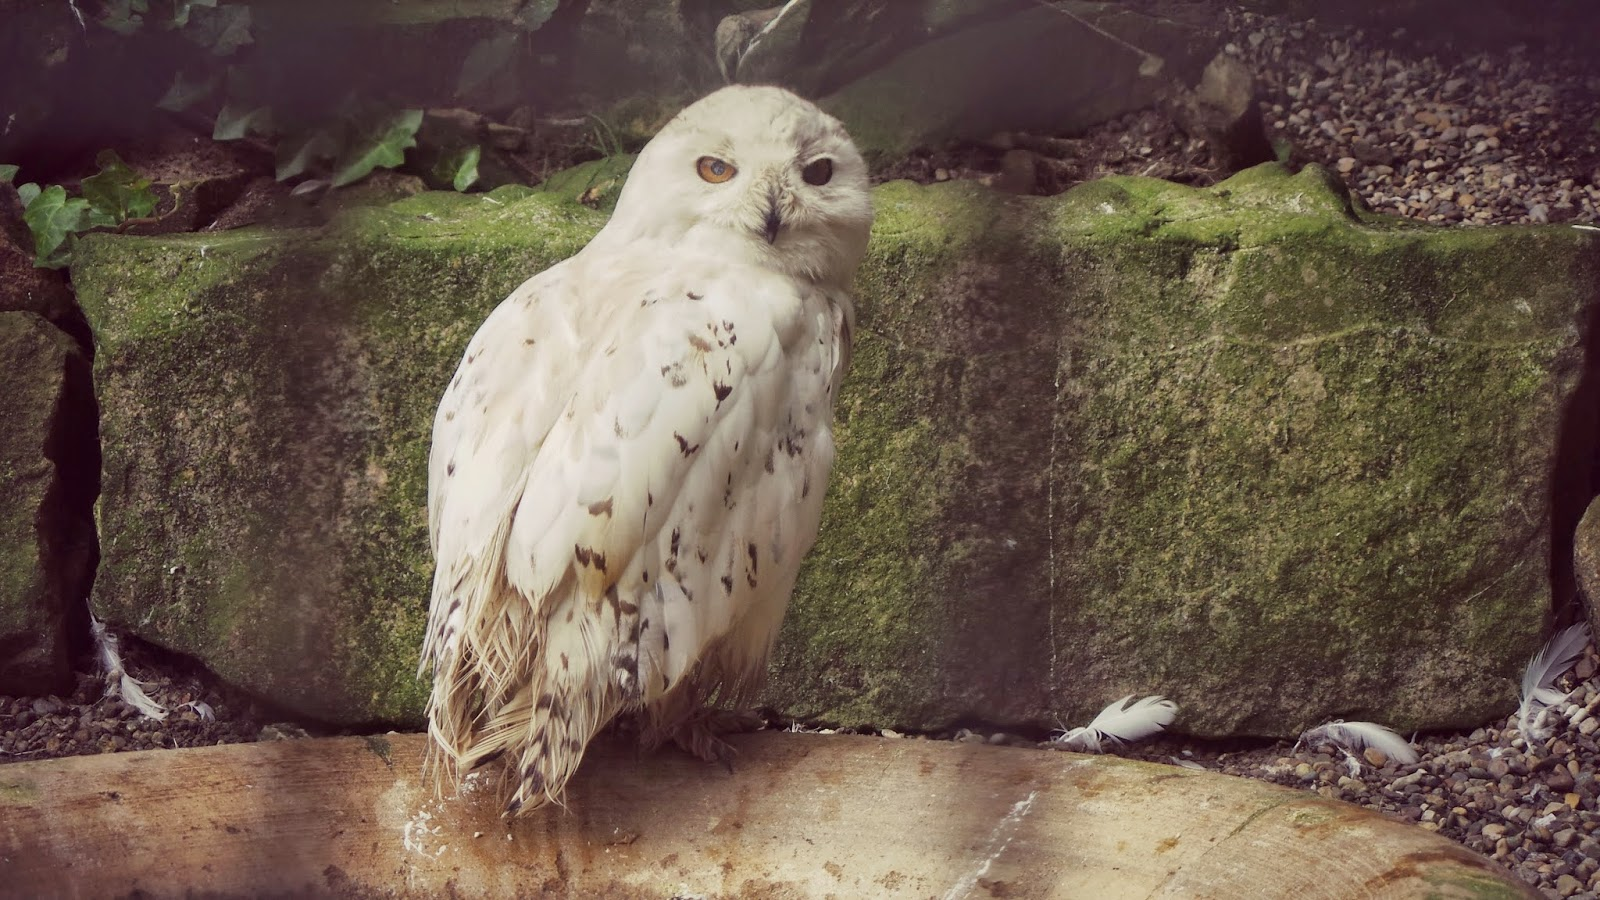 snowy owl at harewood house bird garden